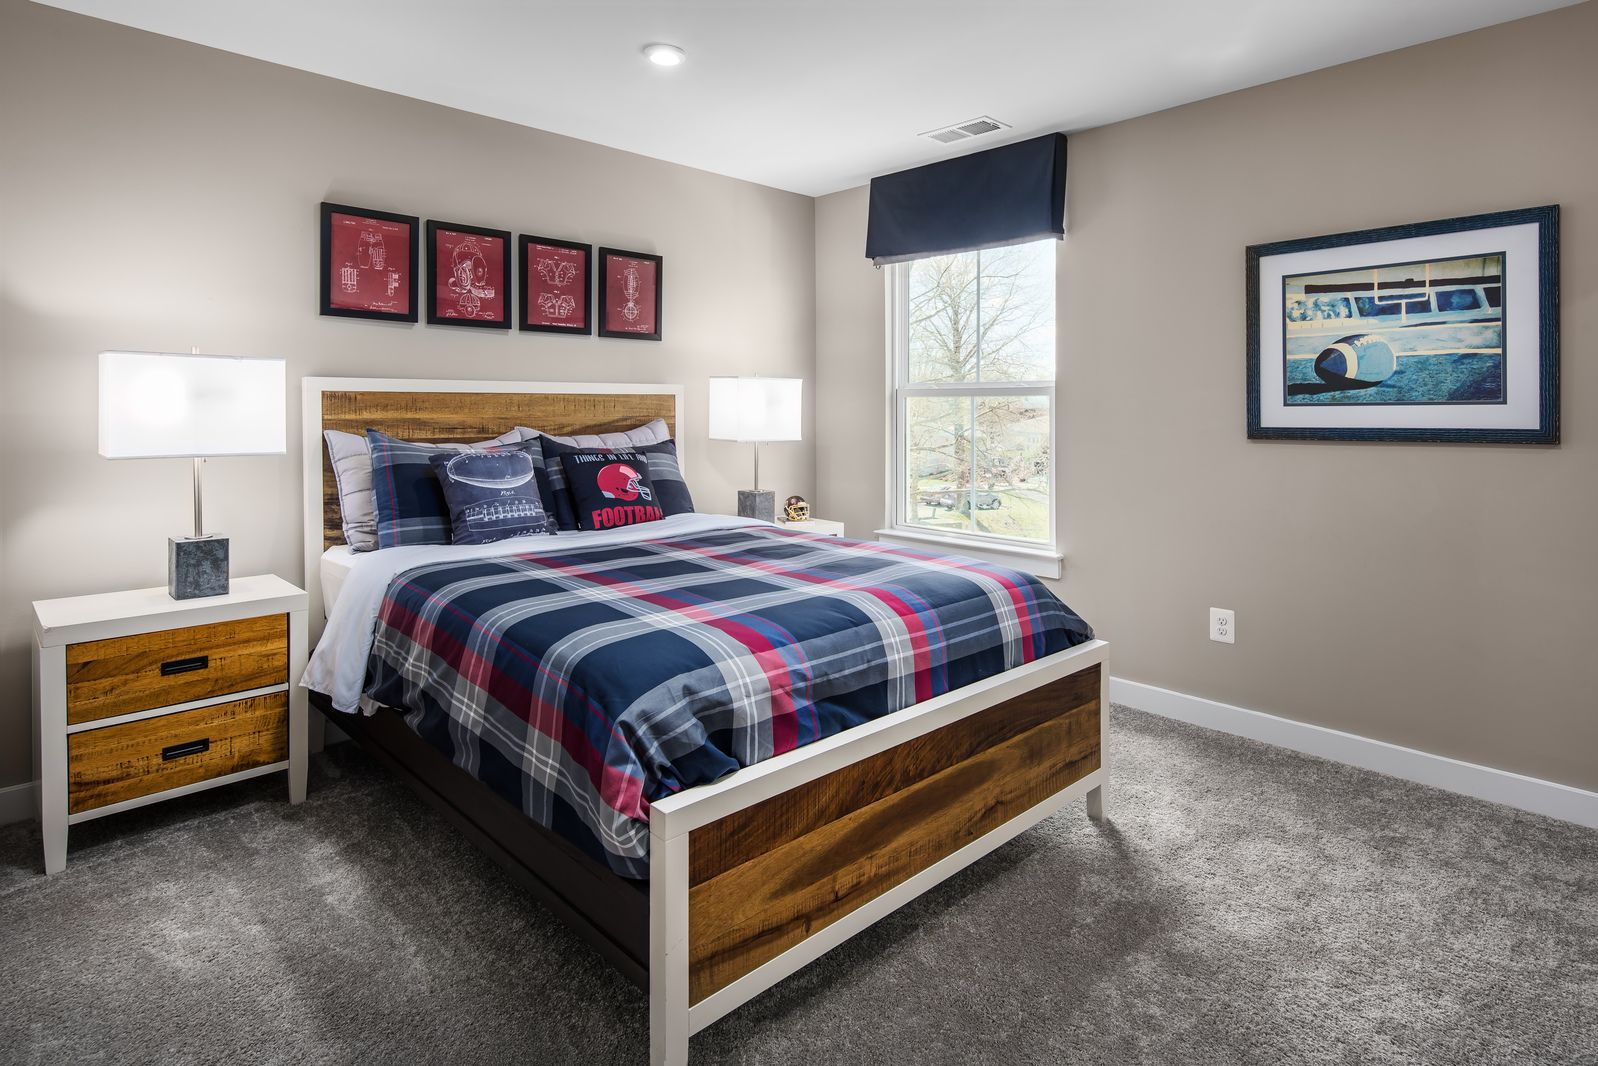 Bedroom featured in the Corsica By Ryan Homes in Washington, VA